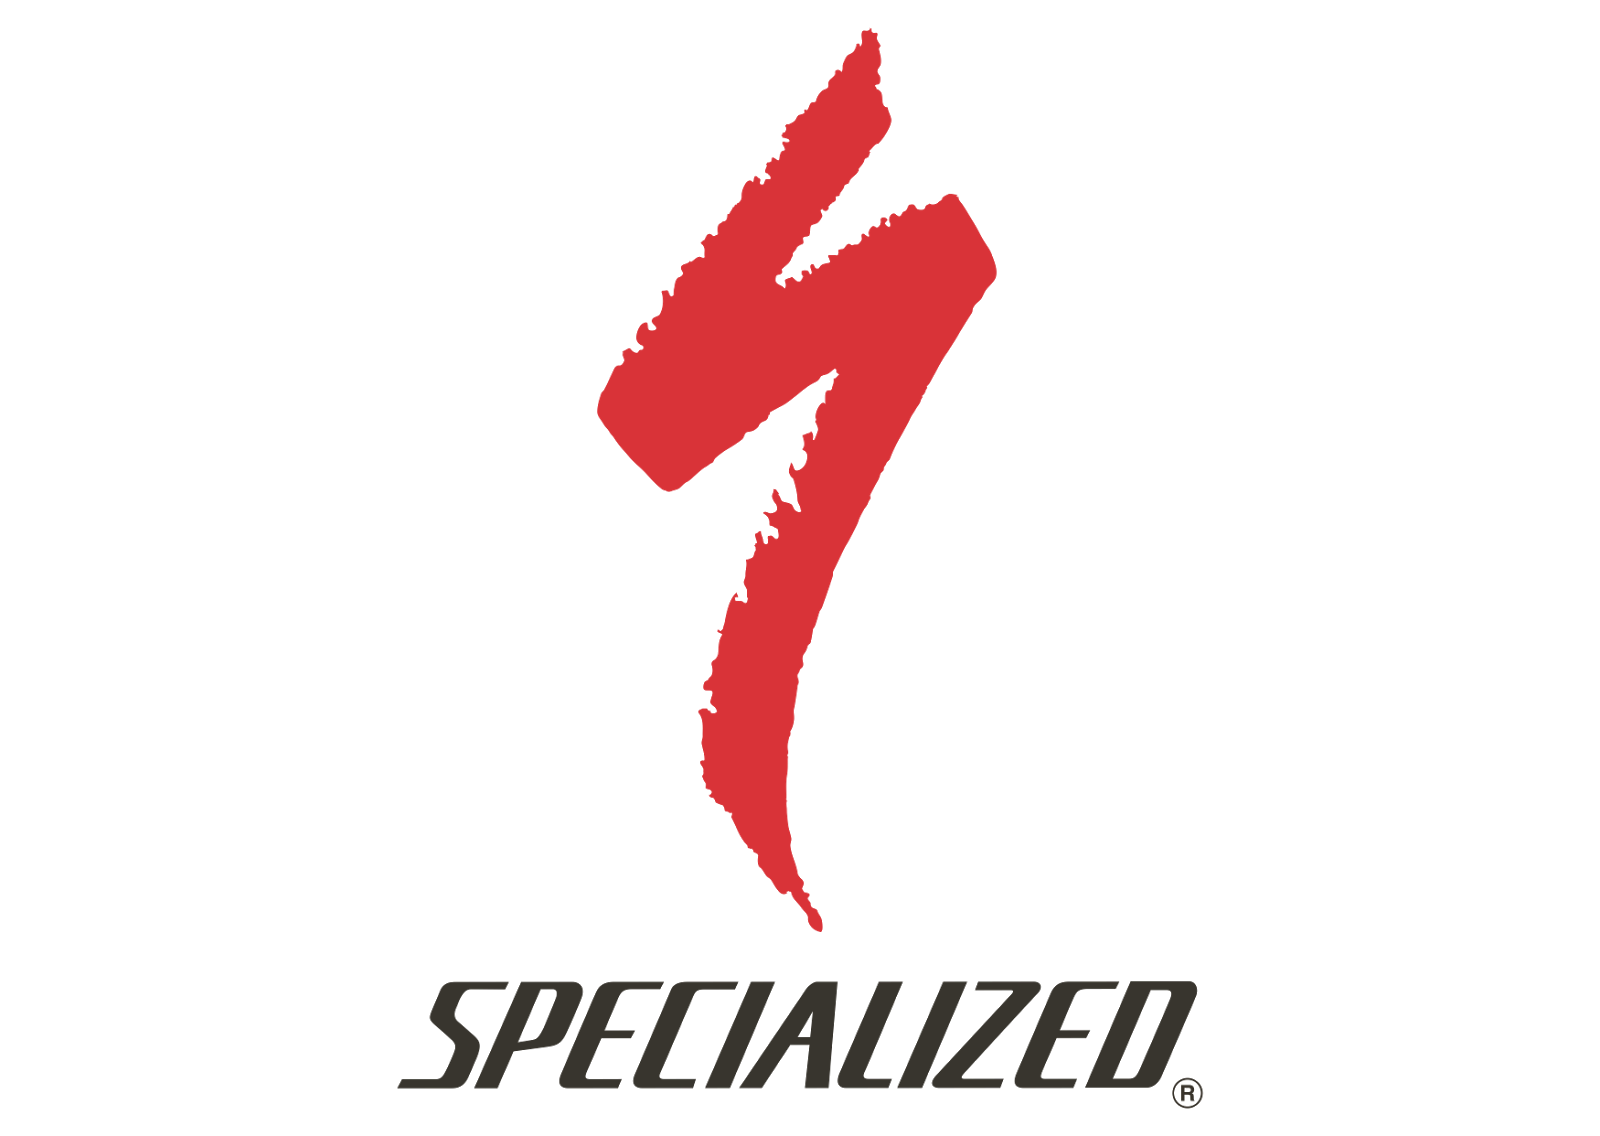 Specialized-logo-vector.png